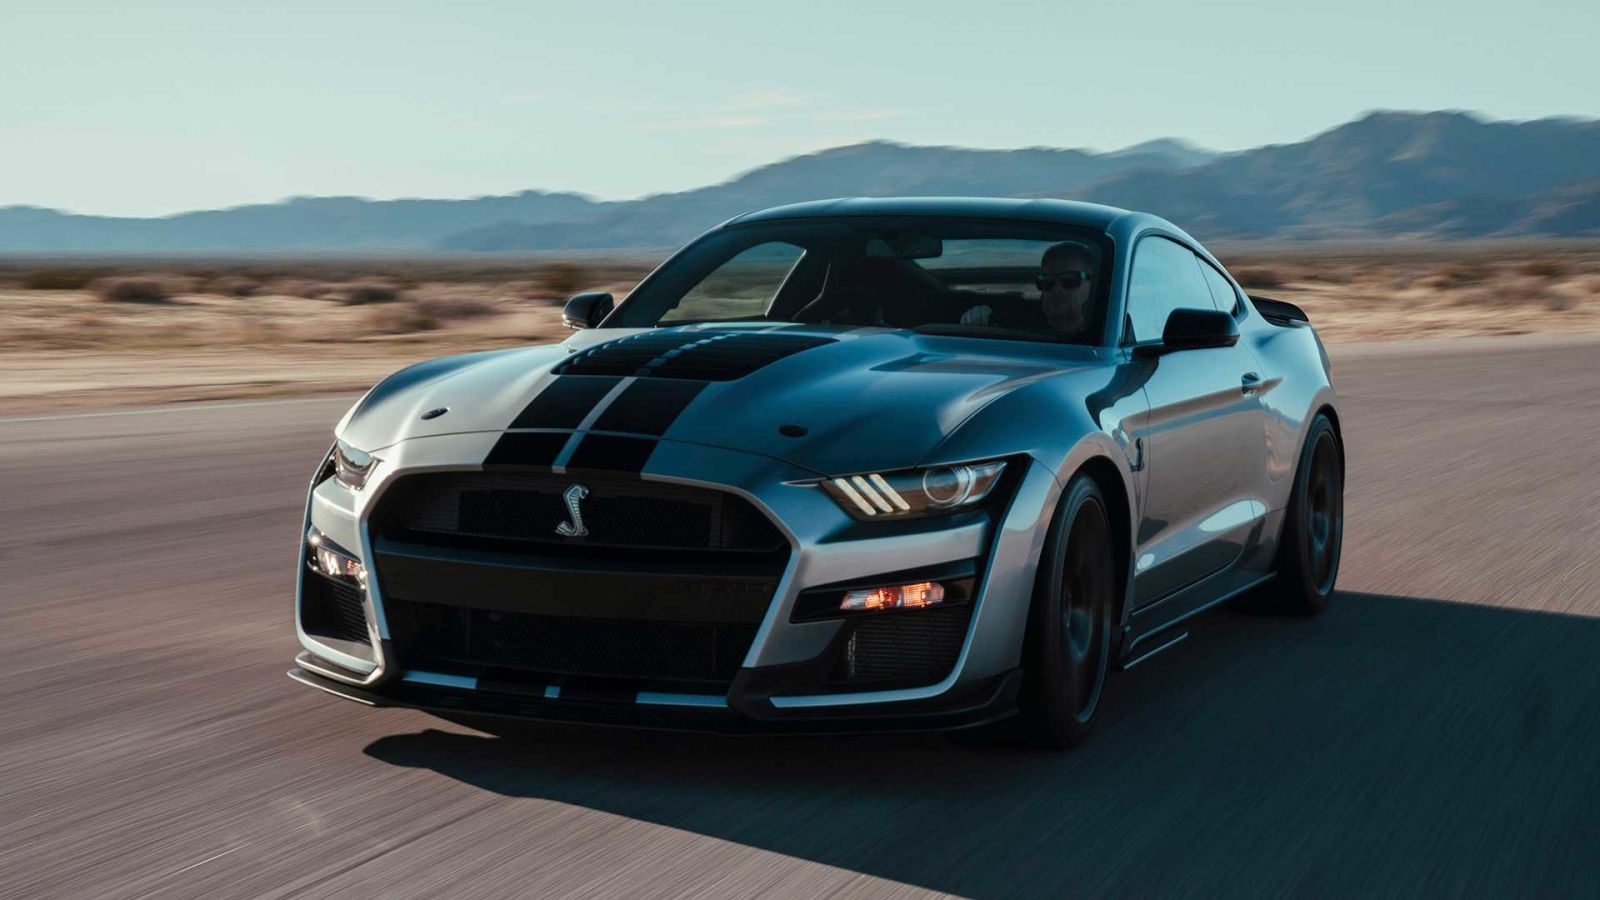 The 2020 Ford Mustang Shelby Gt500 Will Slay Hellcats And Camaros With At Least 700 Hp Ford Mustang Shelby Gt500 Mustang Gt500 Mustang Shelby